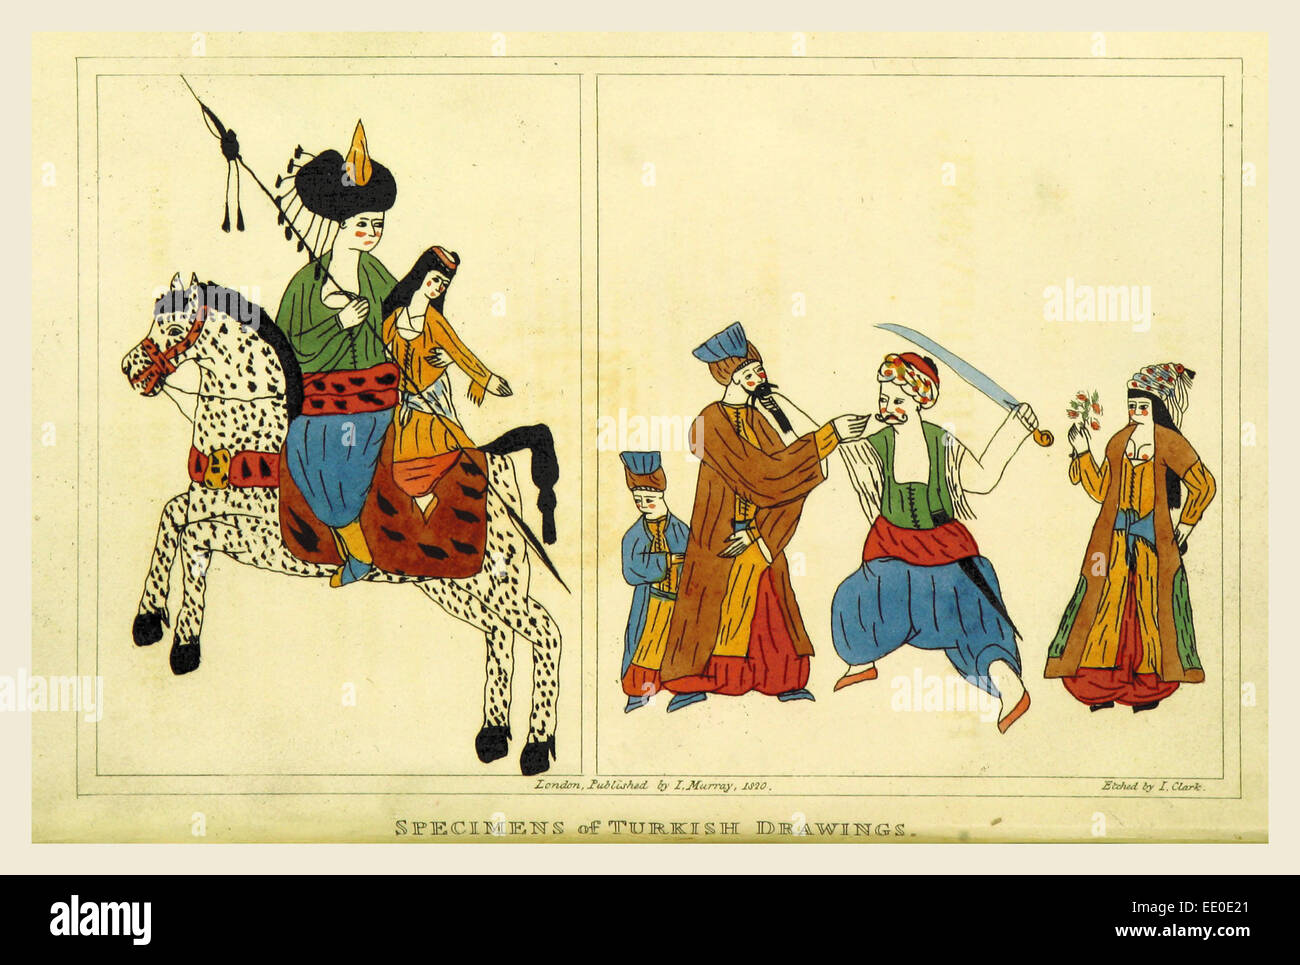 A Tour in the Levant, Turkish drawings, 1820 - Stock Image